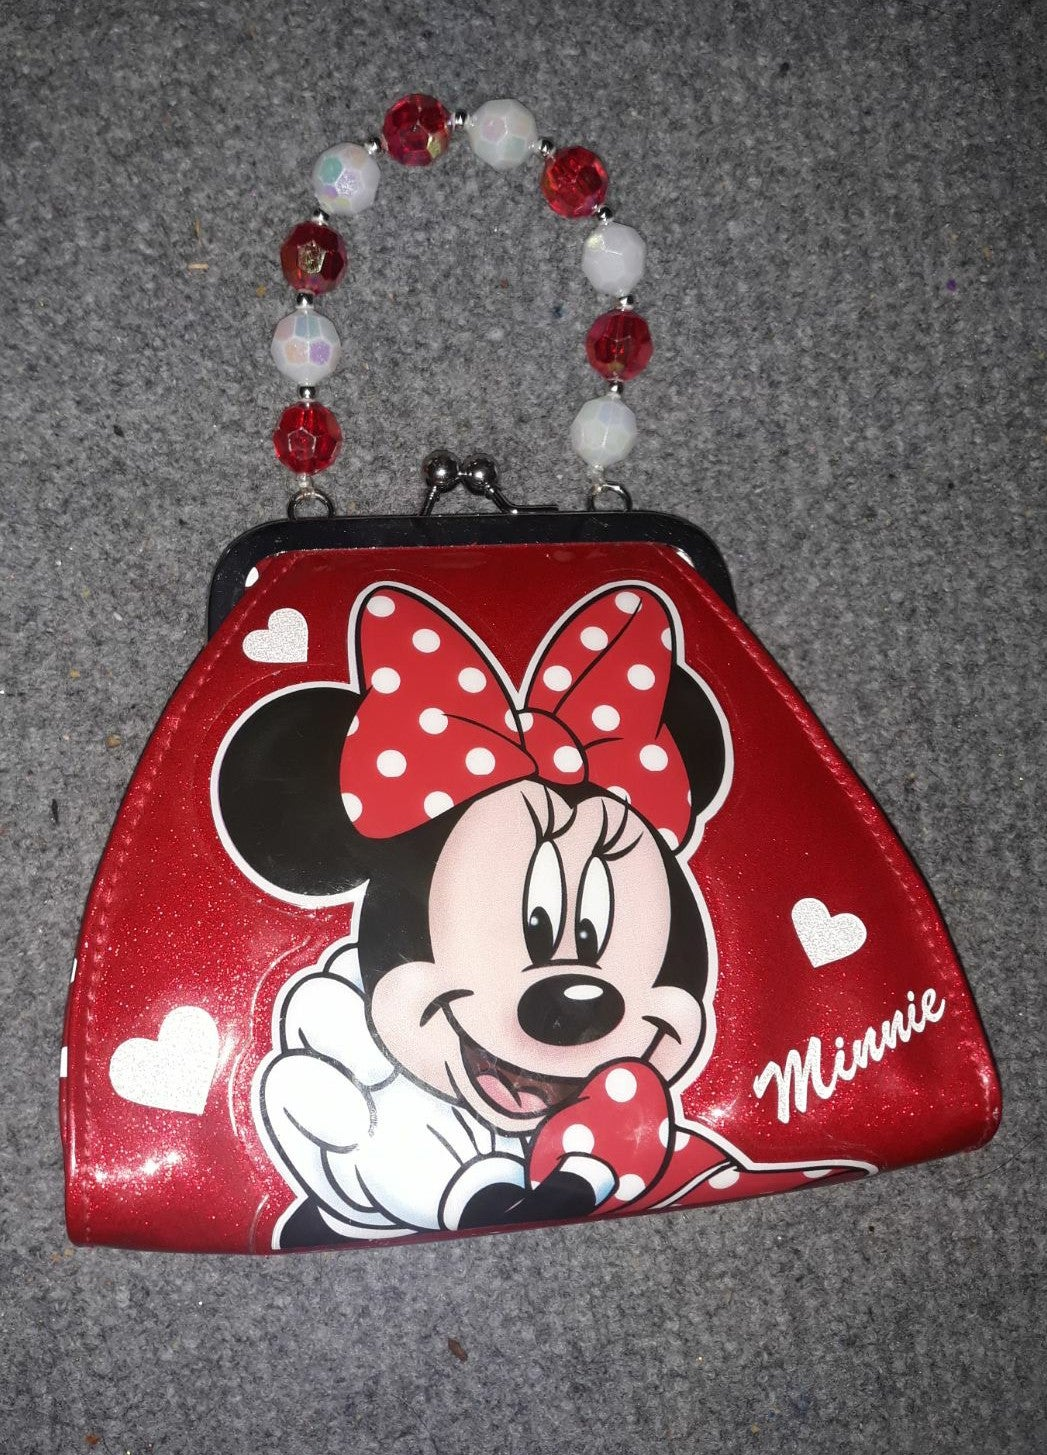 Minnie mouse polka dot red clutch